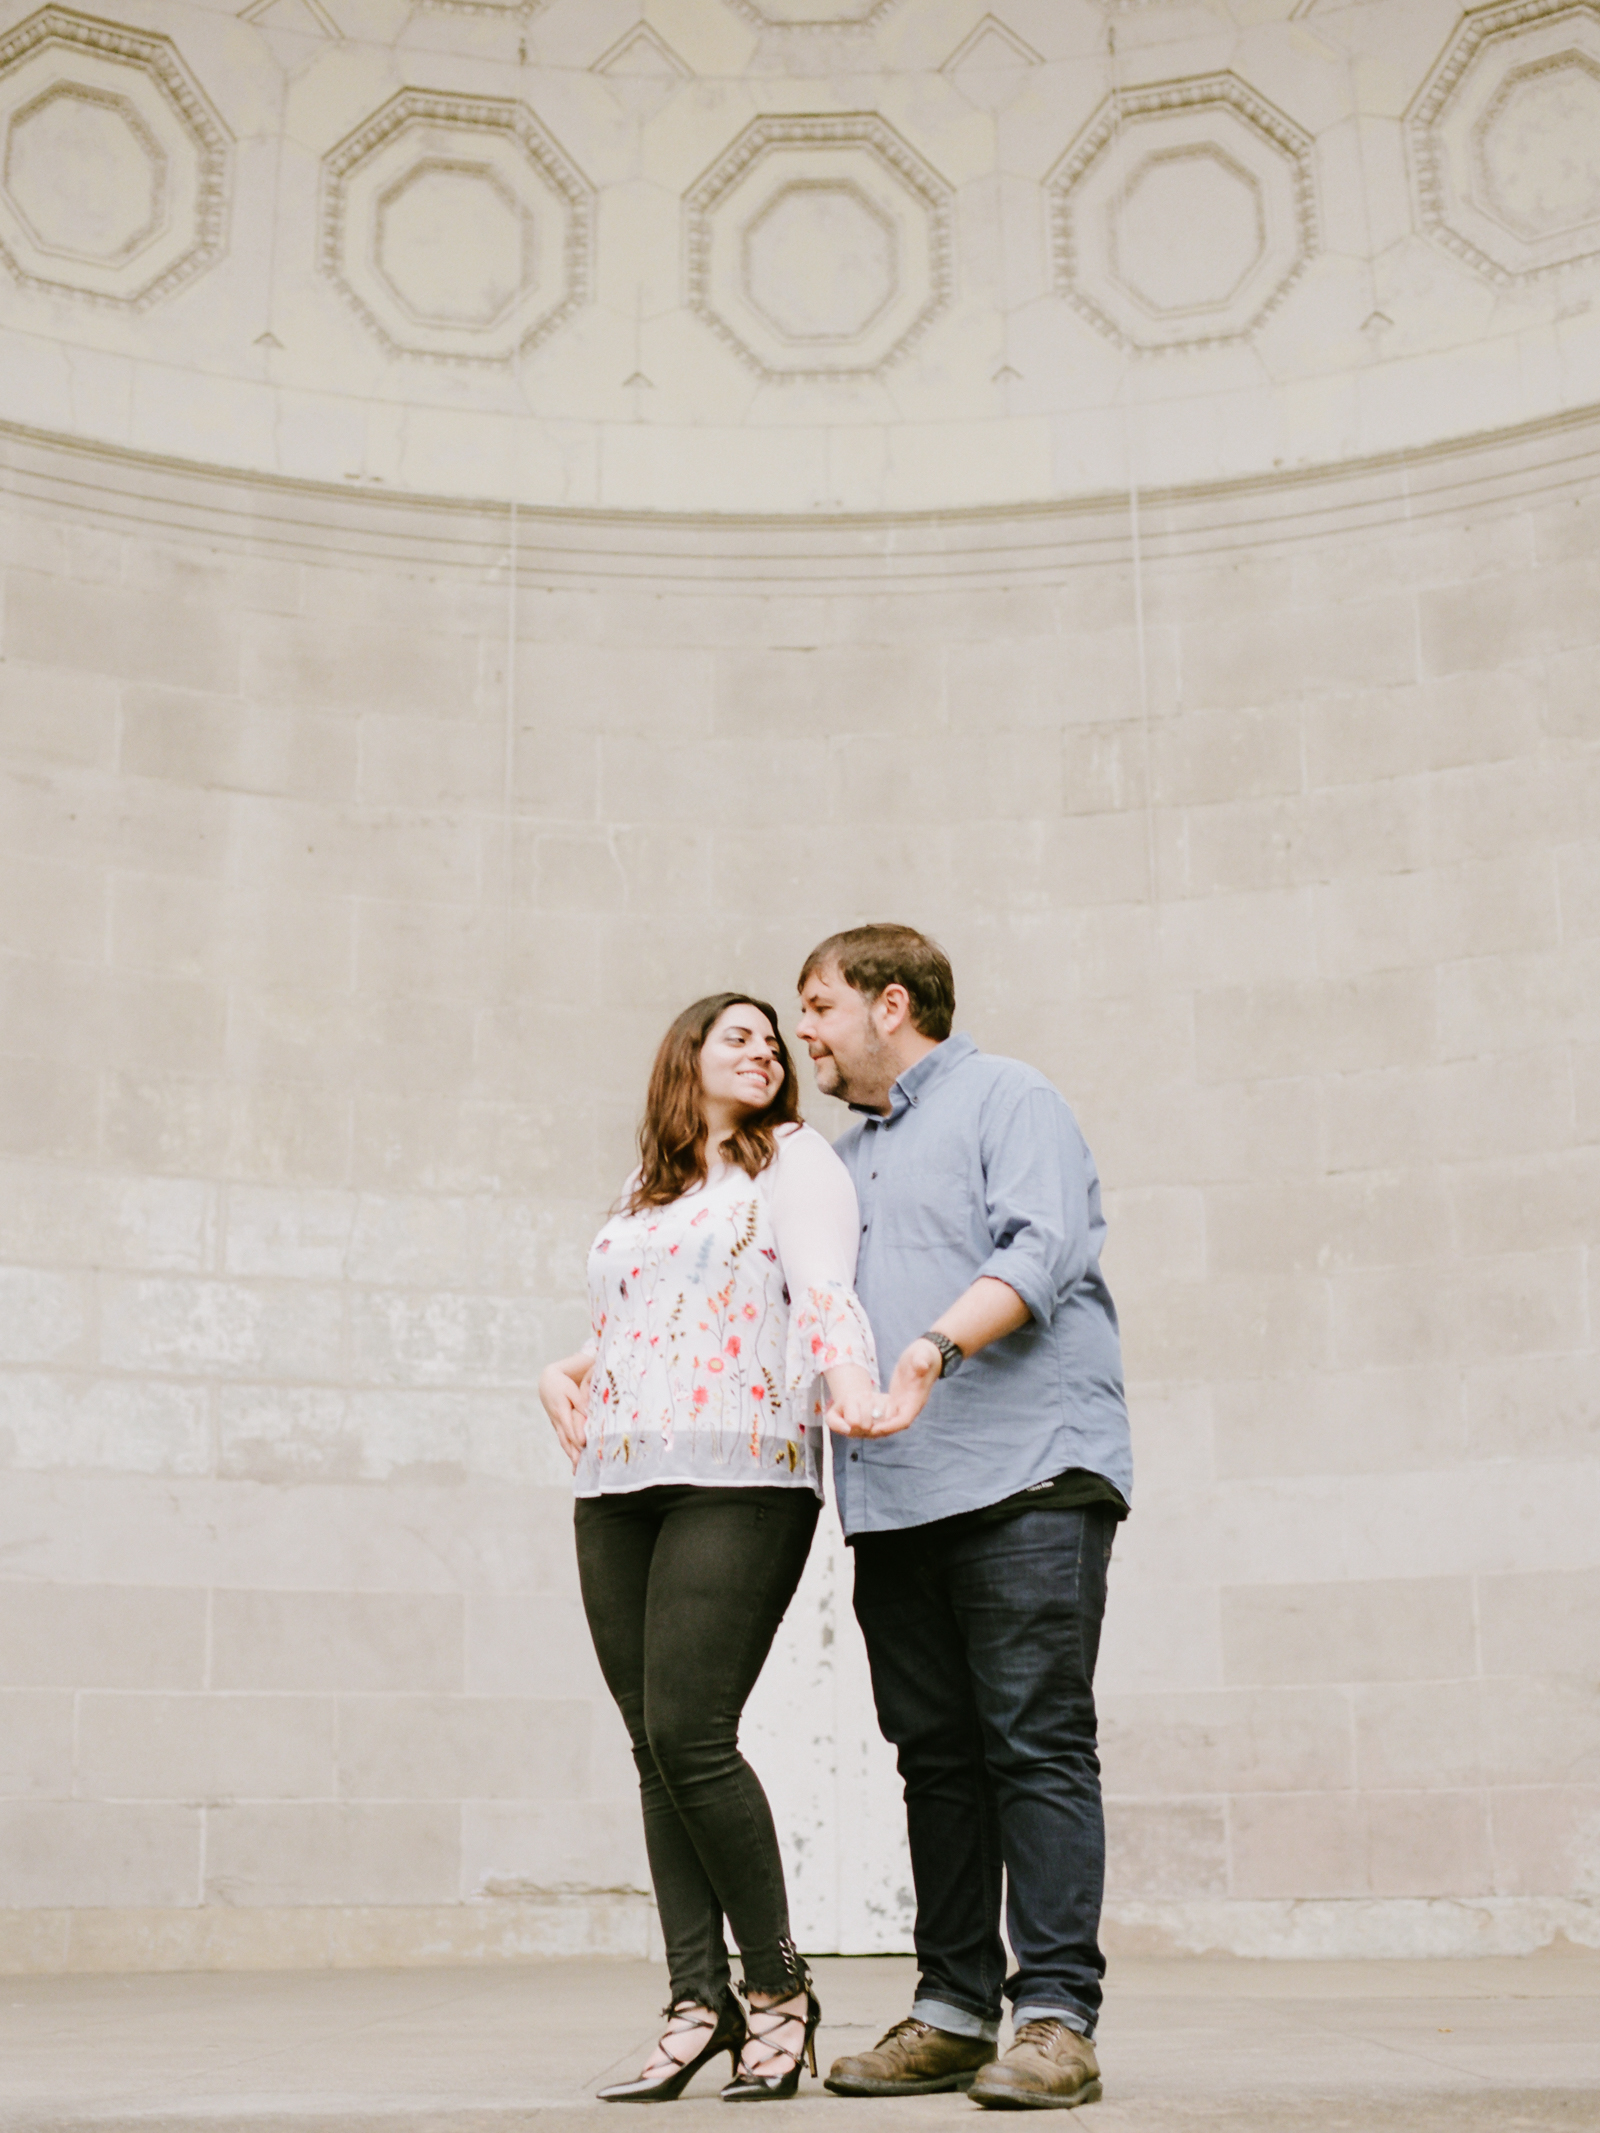 Central-Park-NYC-Engagement-Session-film-photography-53.jpg